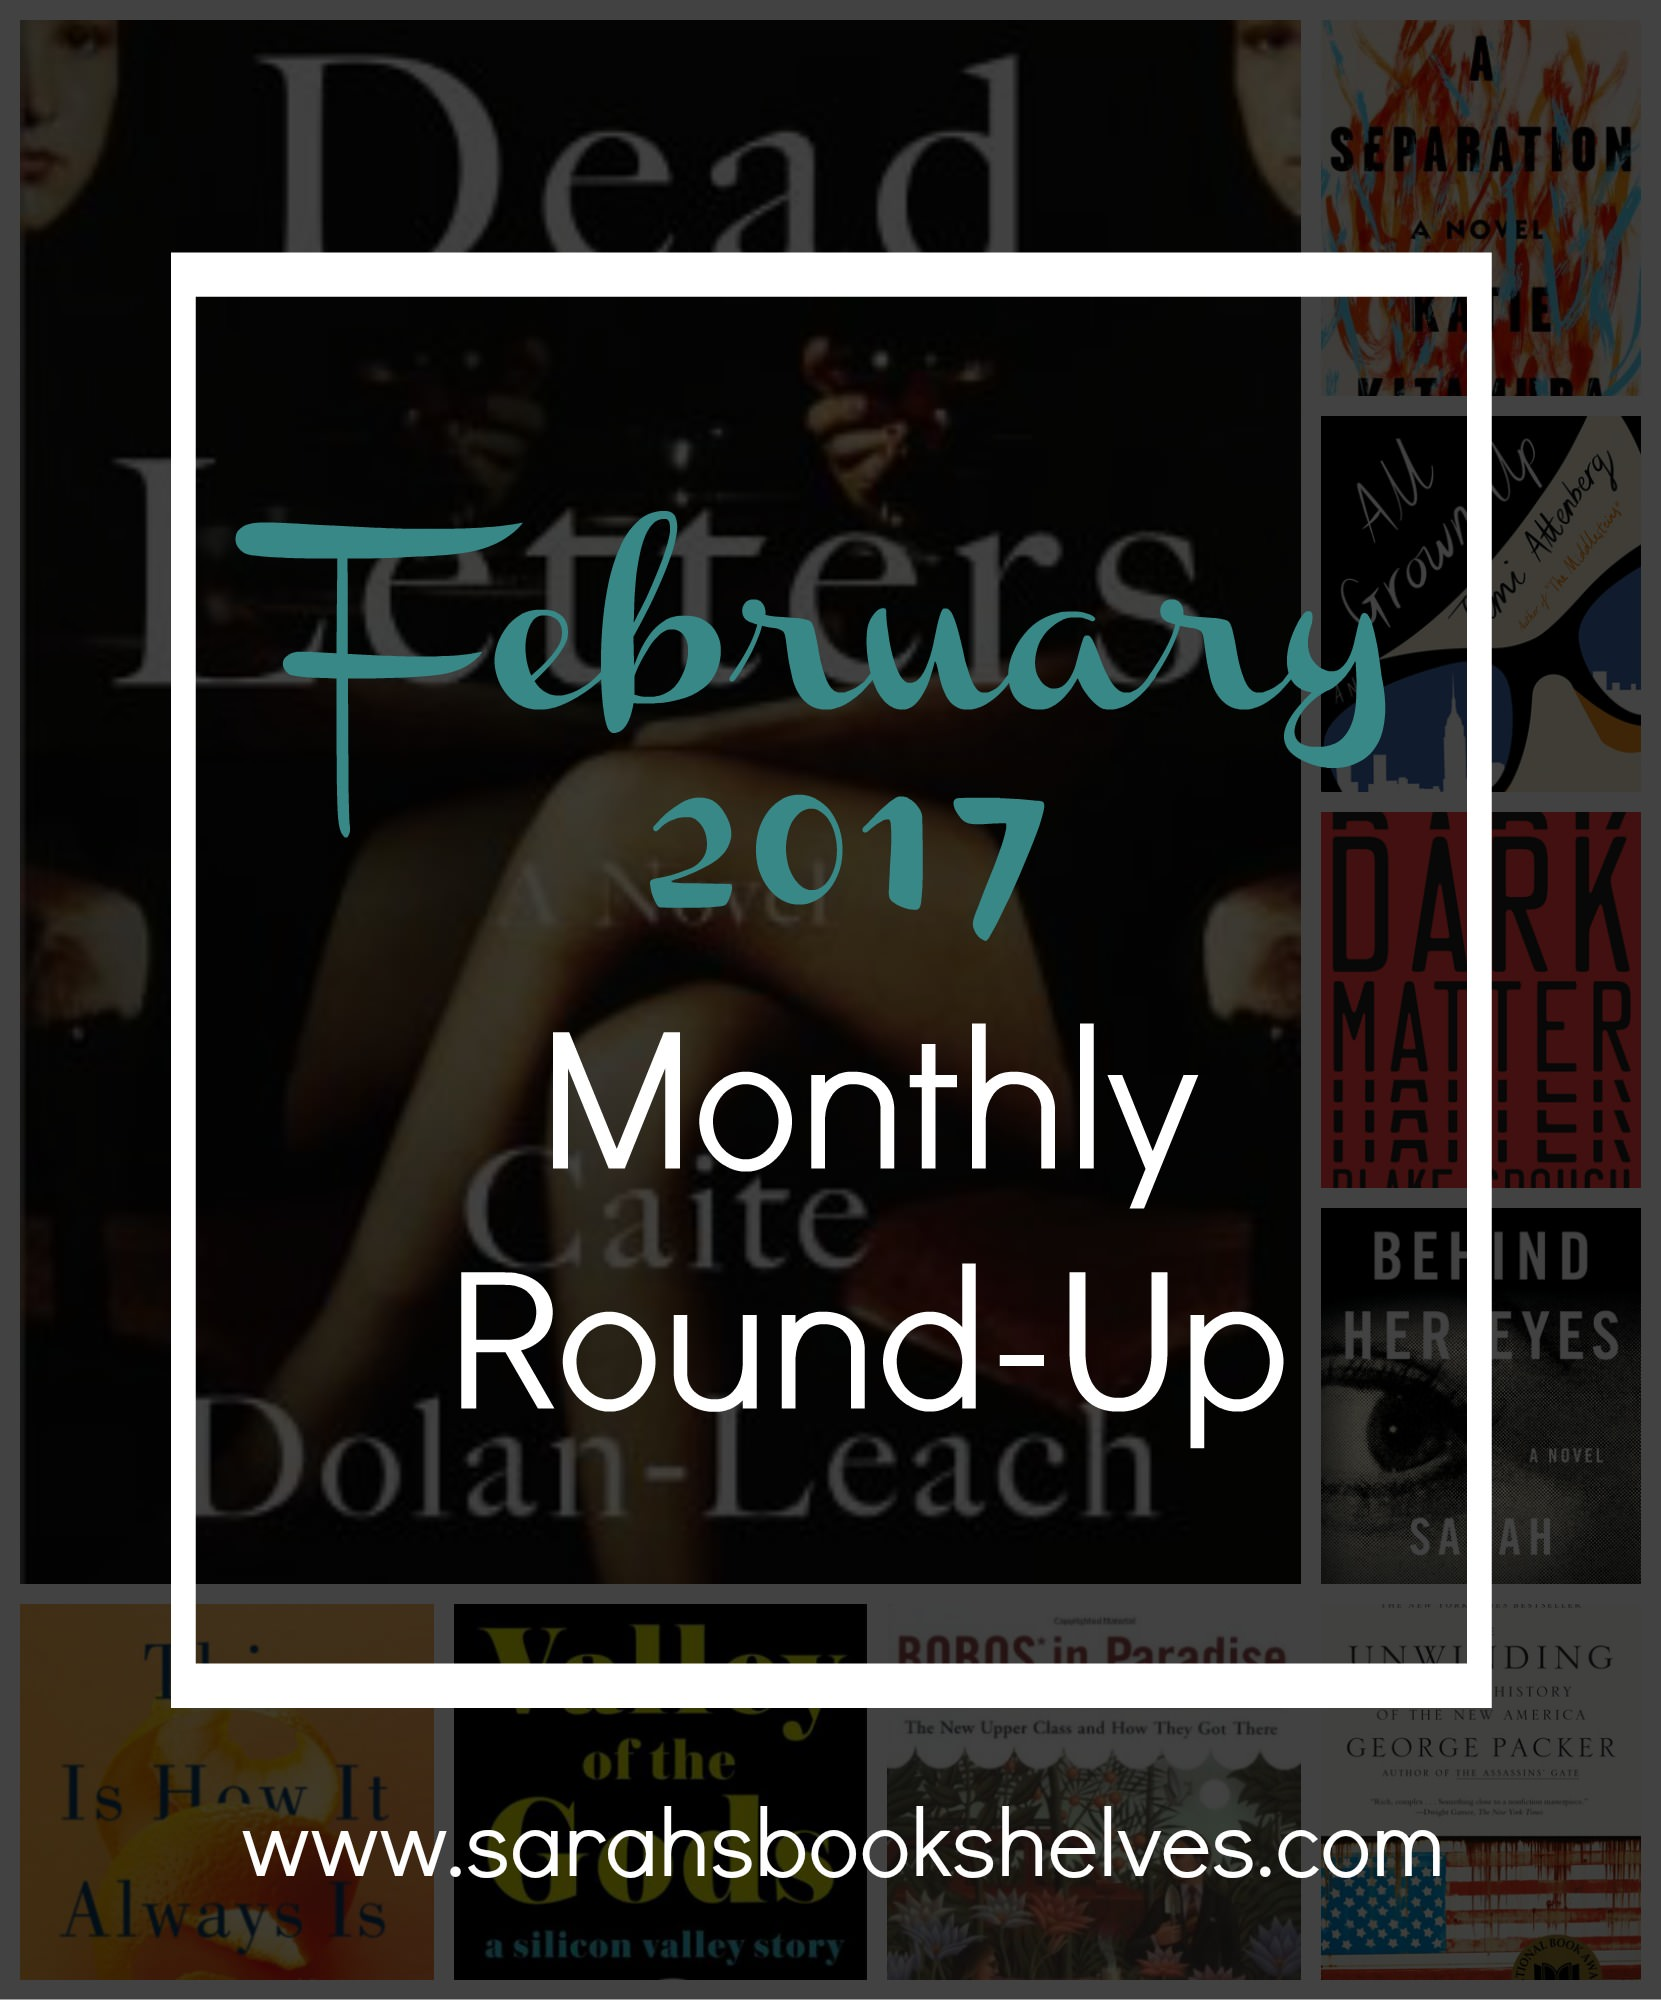 Awesome month - two 5 star books!